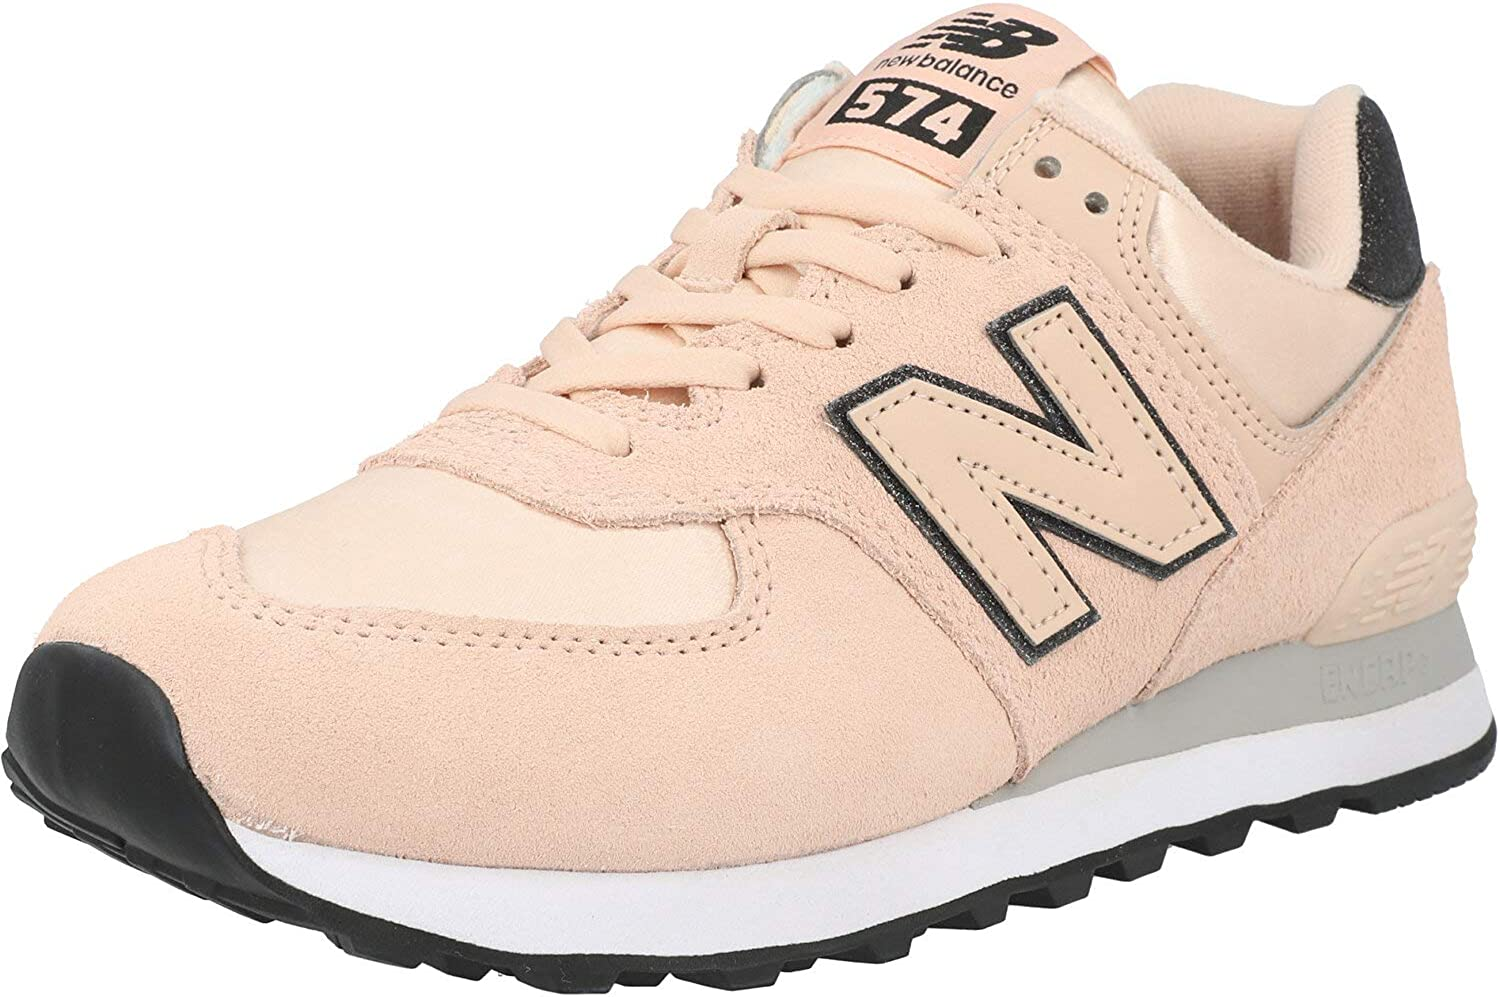 New Balance 574 Rose Water Rain Cloud Trainers Adult Shoes Animer and price revision Department store Suede